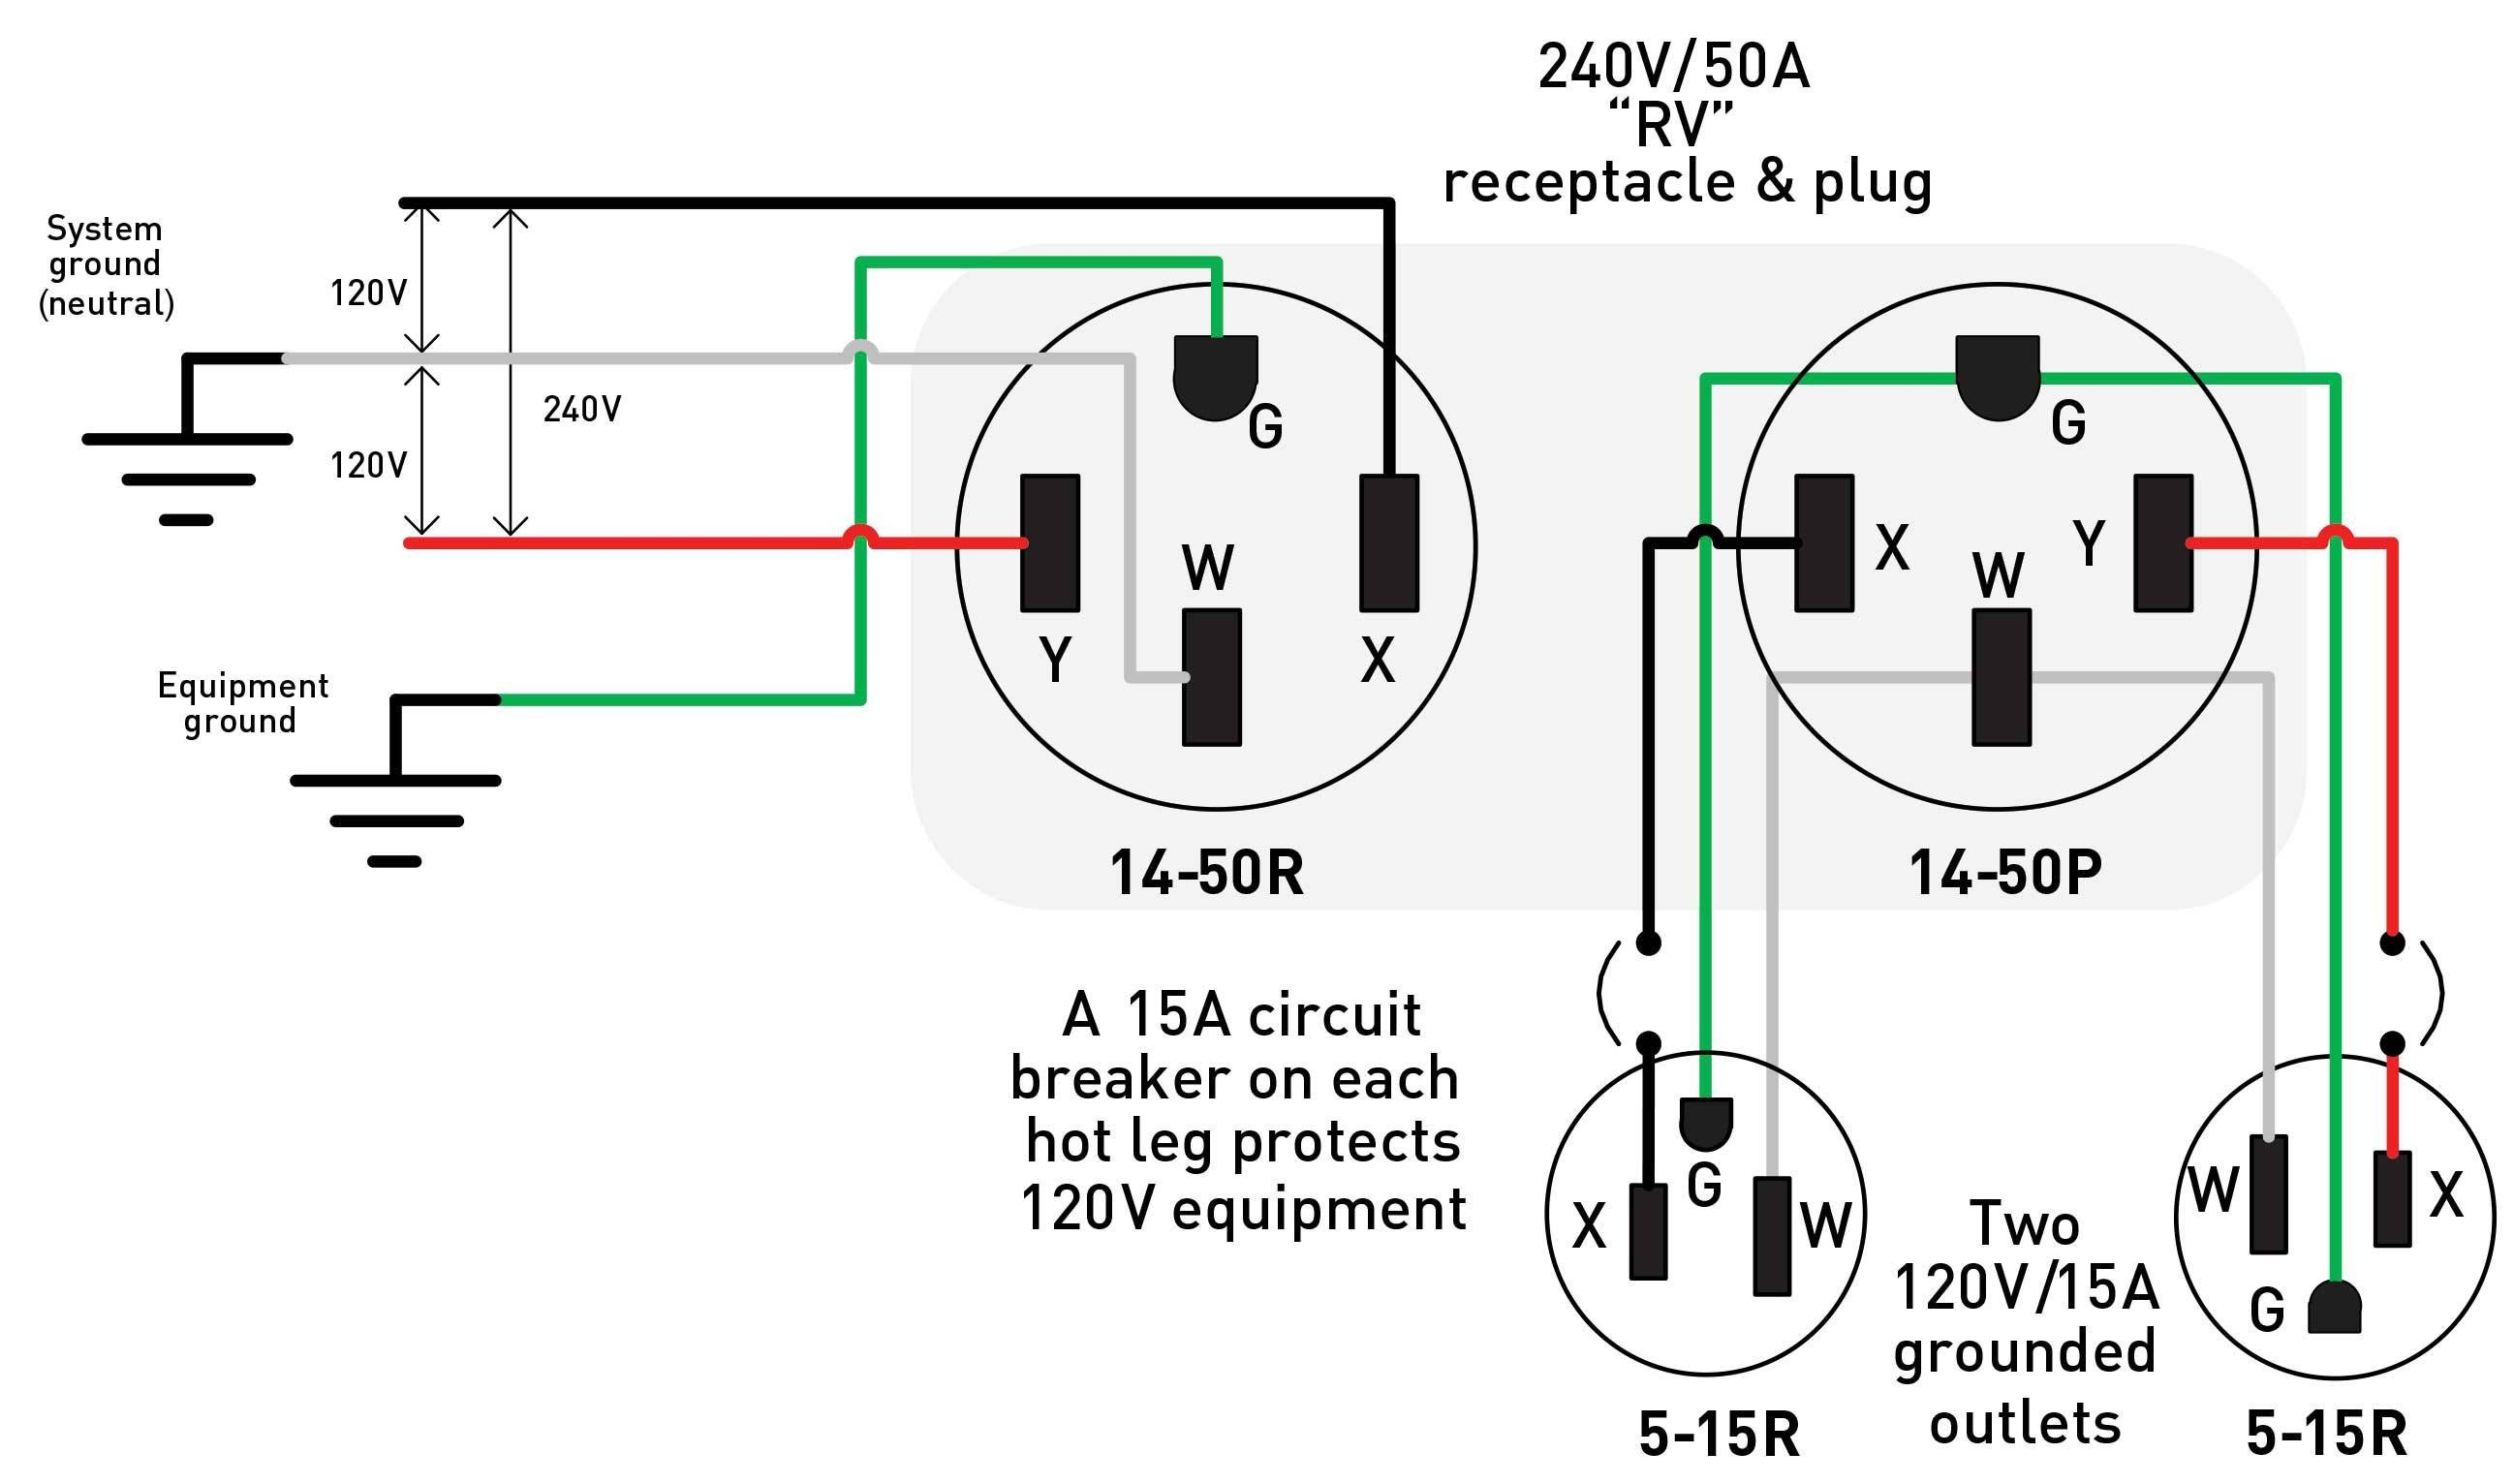 30 Amp Receptacle Wiring Schematic | Wiring Diagram - 30 Amp Rv Plug Wiring Diagram